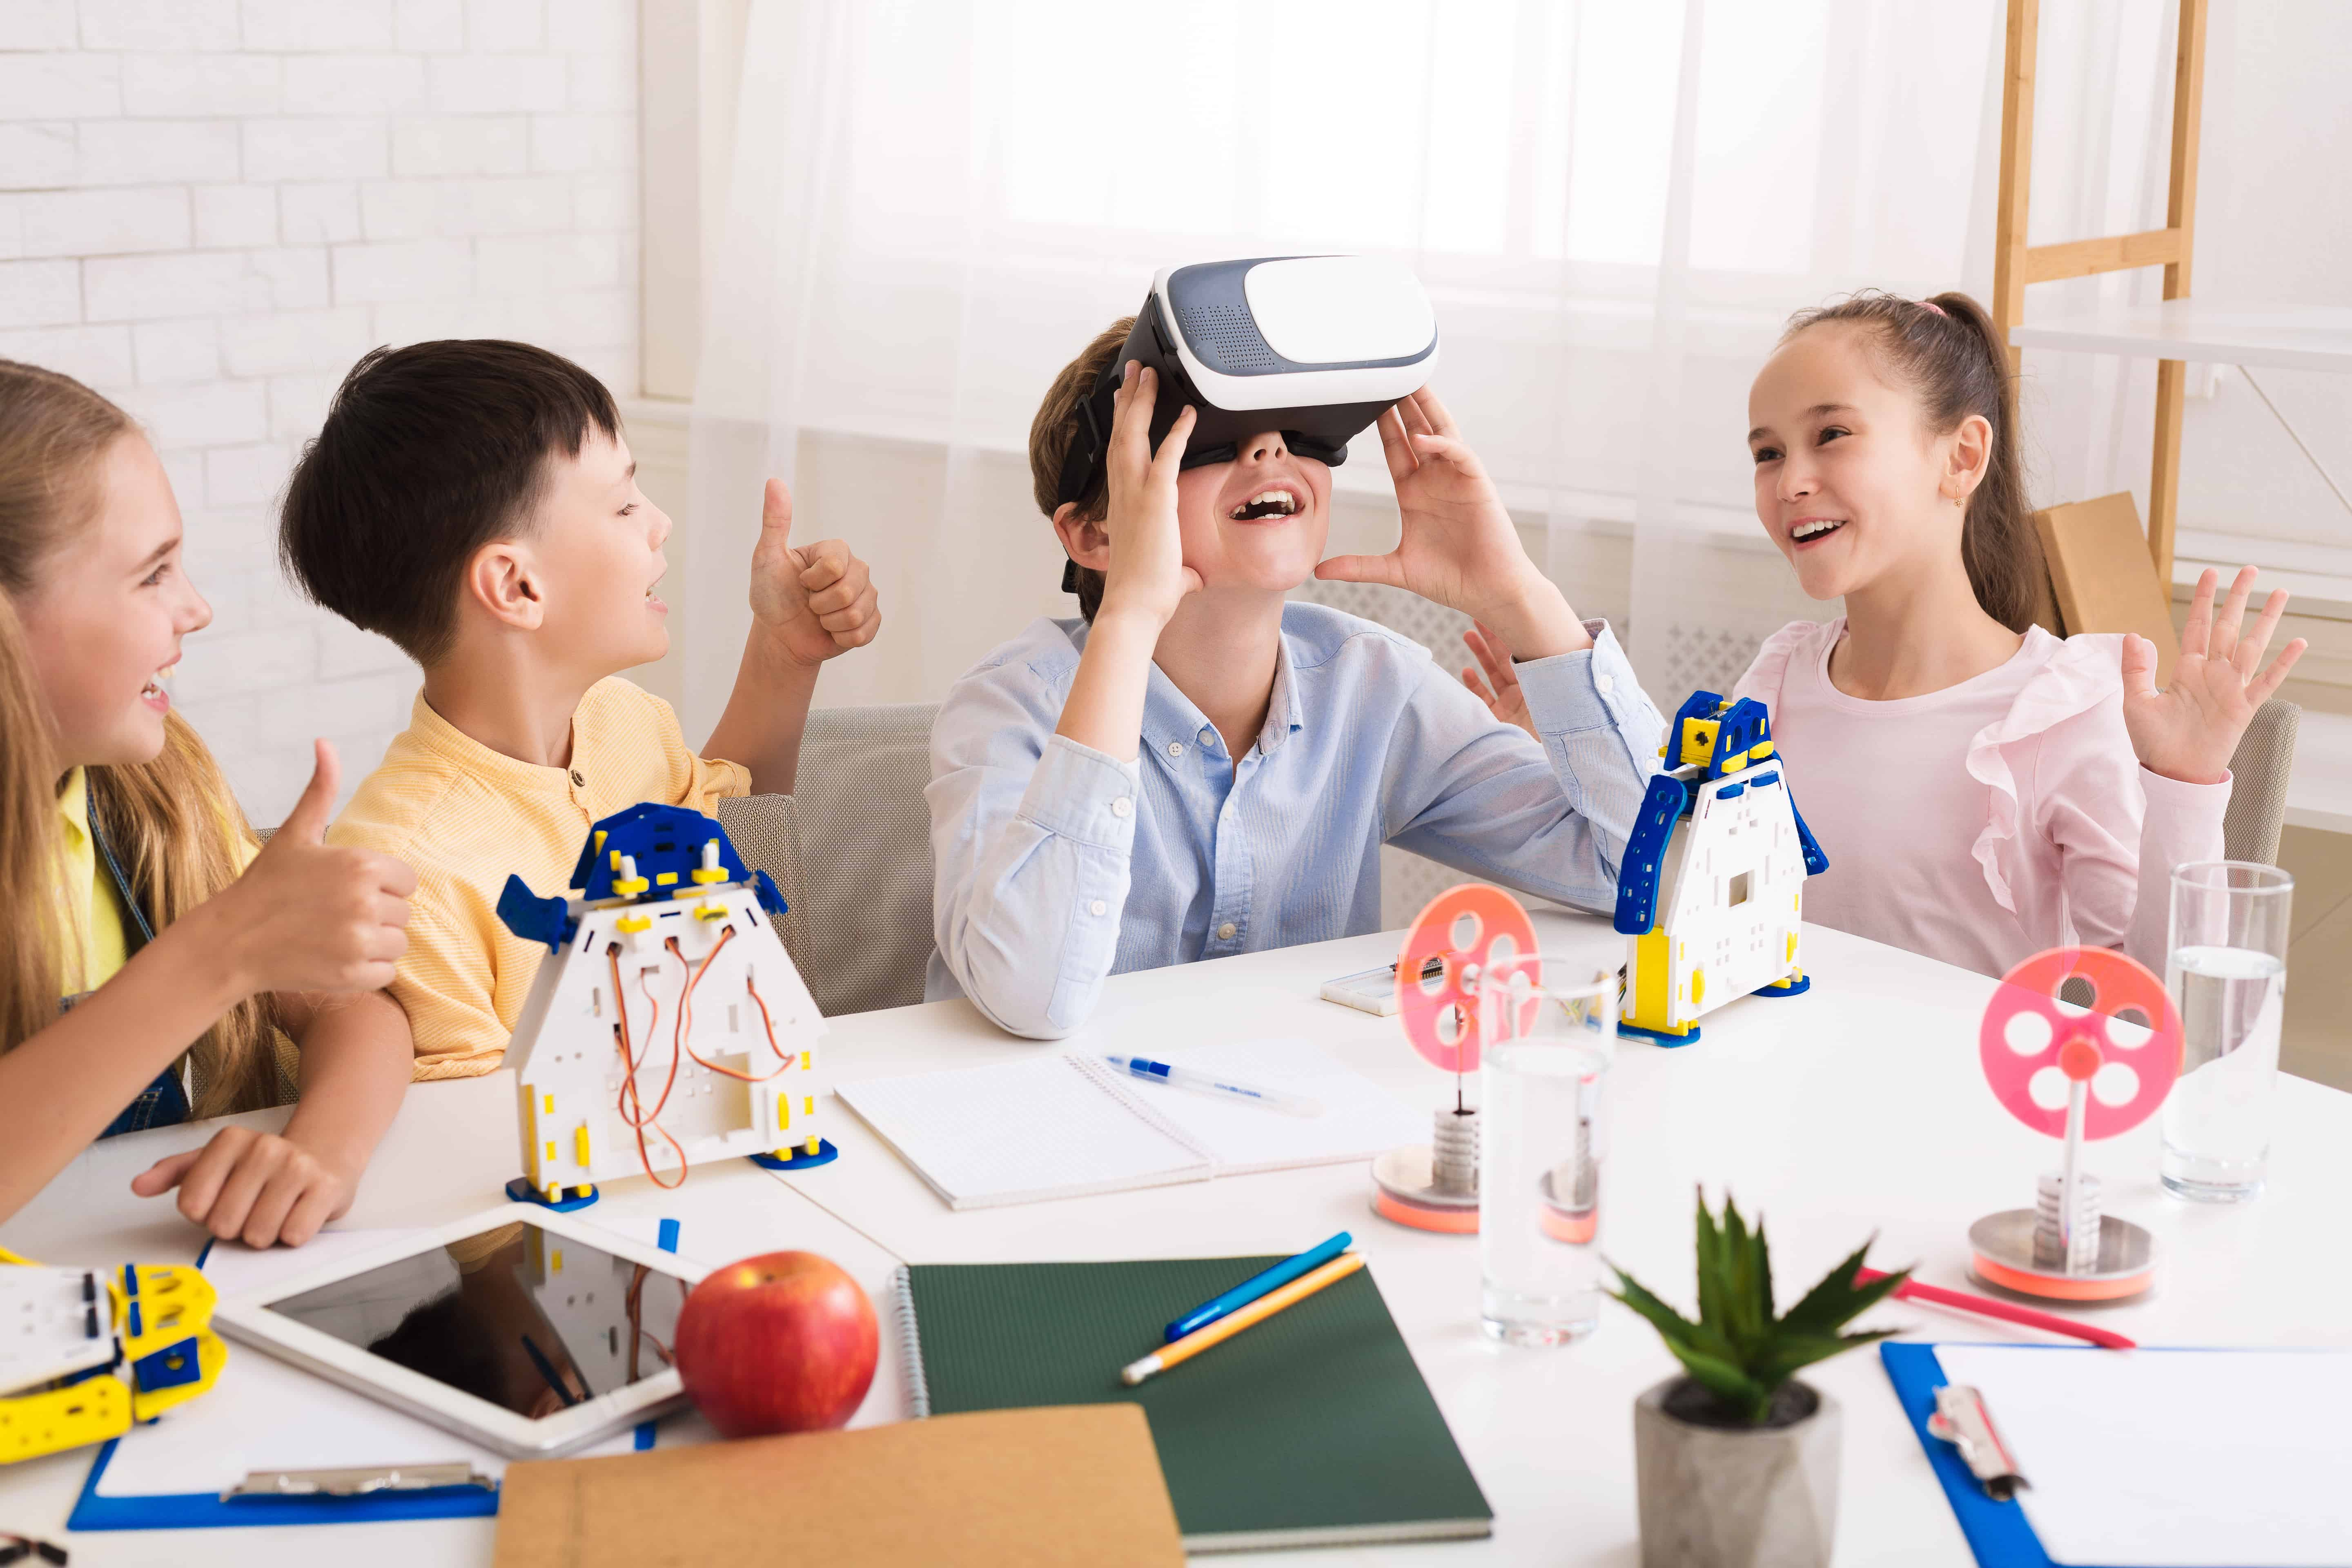 Virtual reality, VR, technology facts